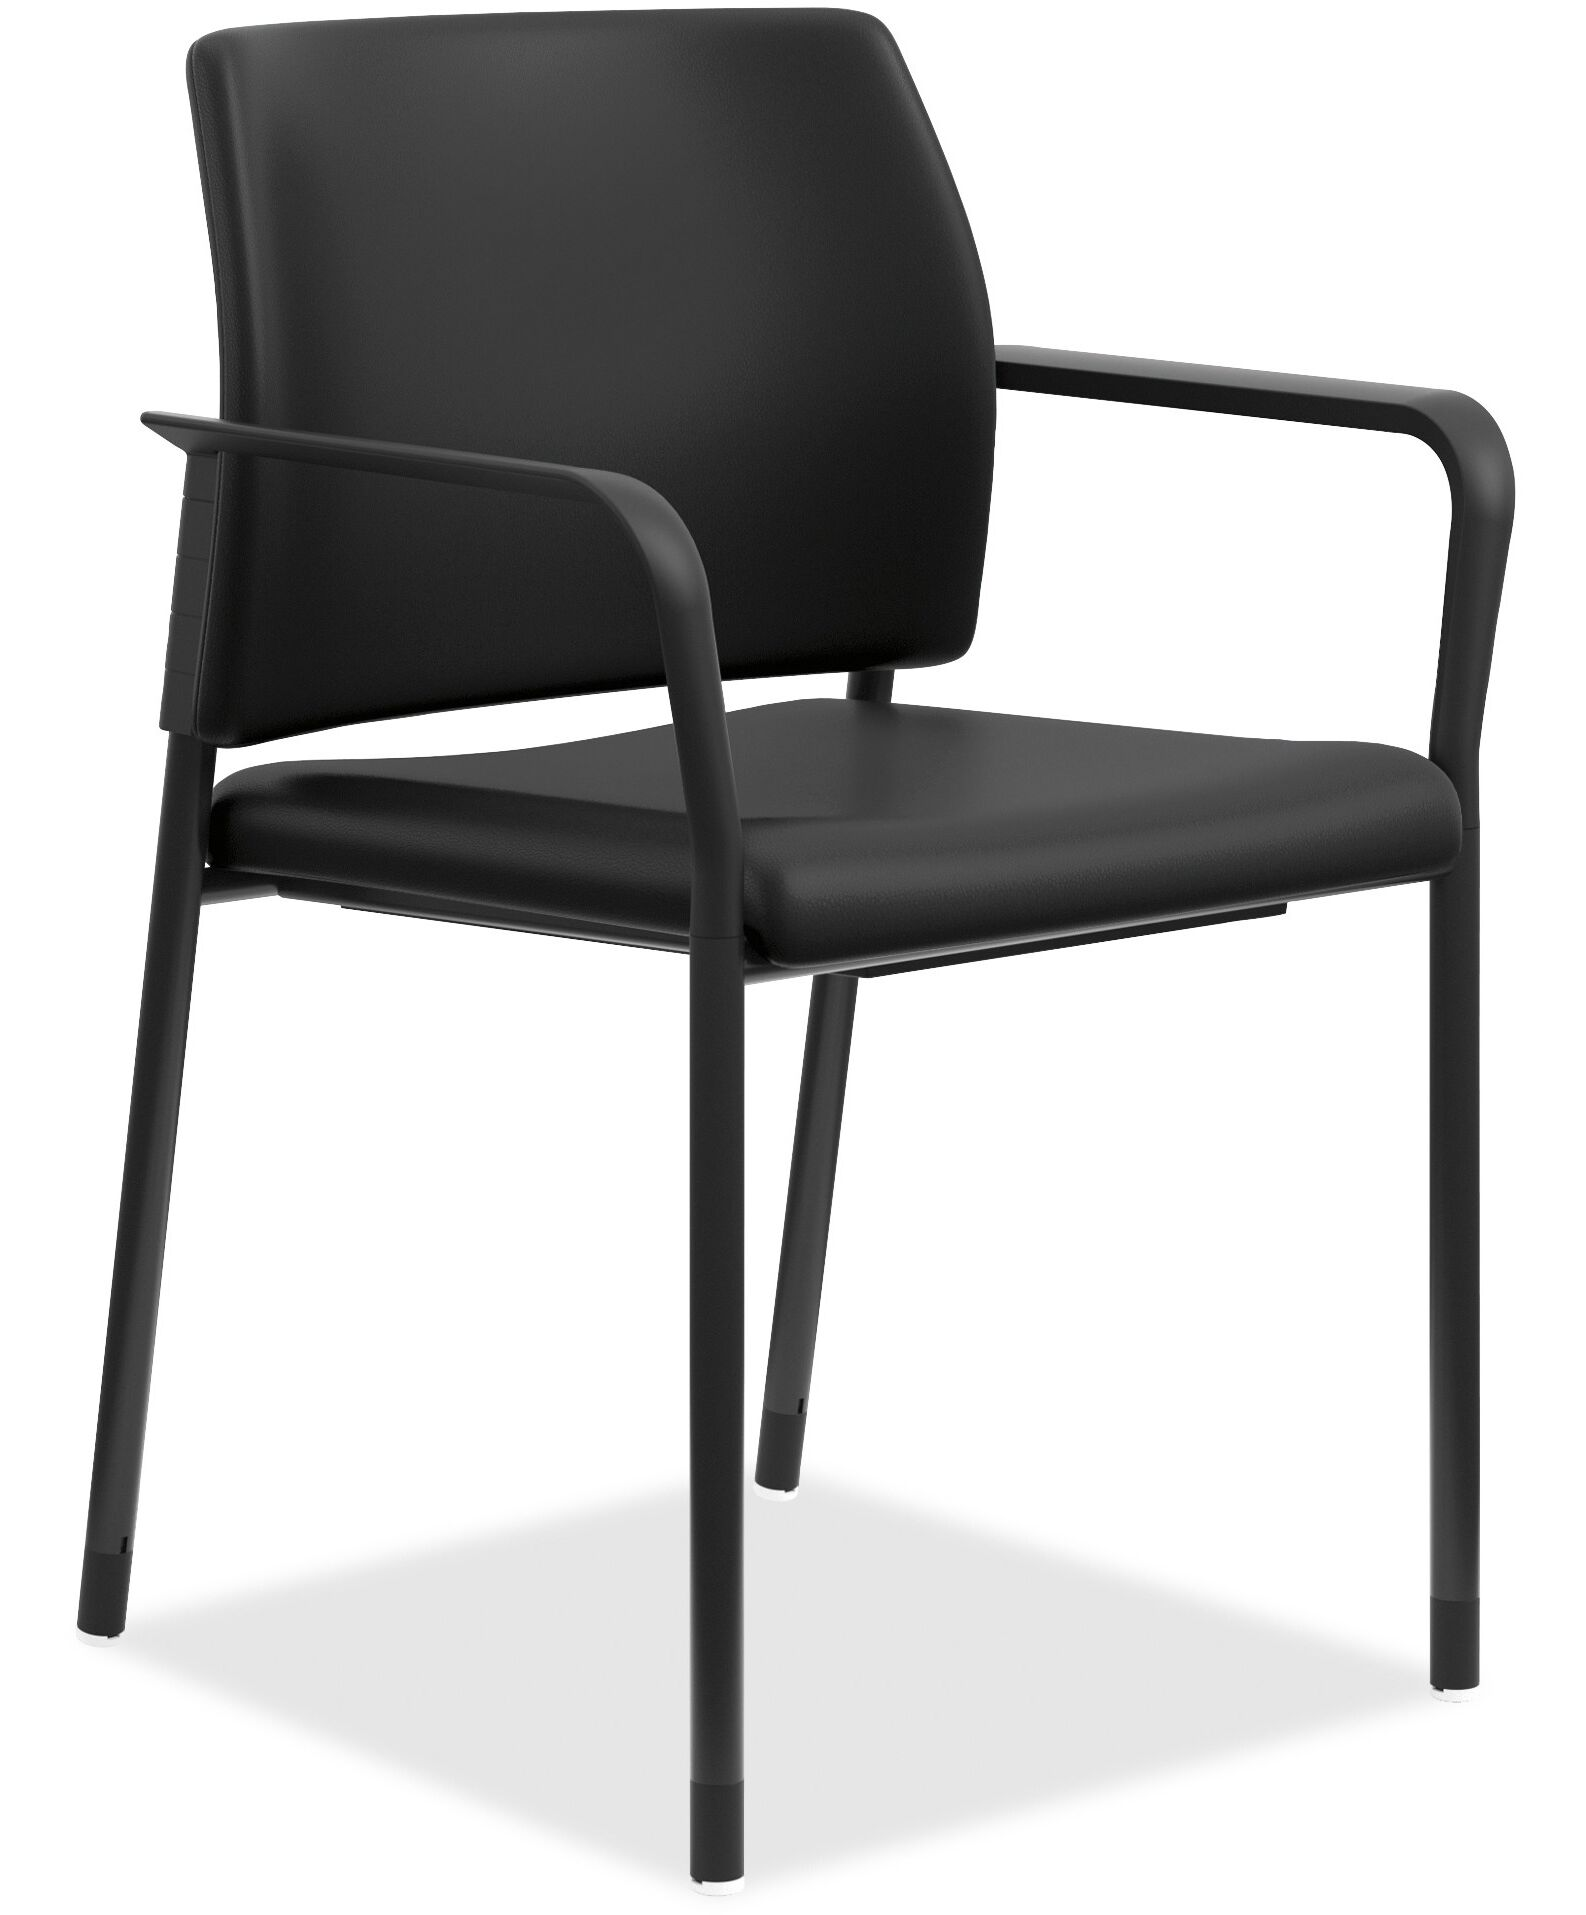 Guest Chair Arm Options: With Arms